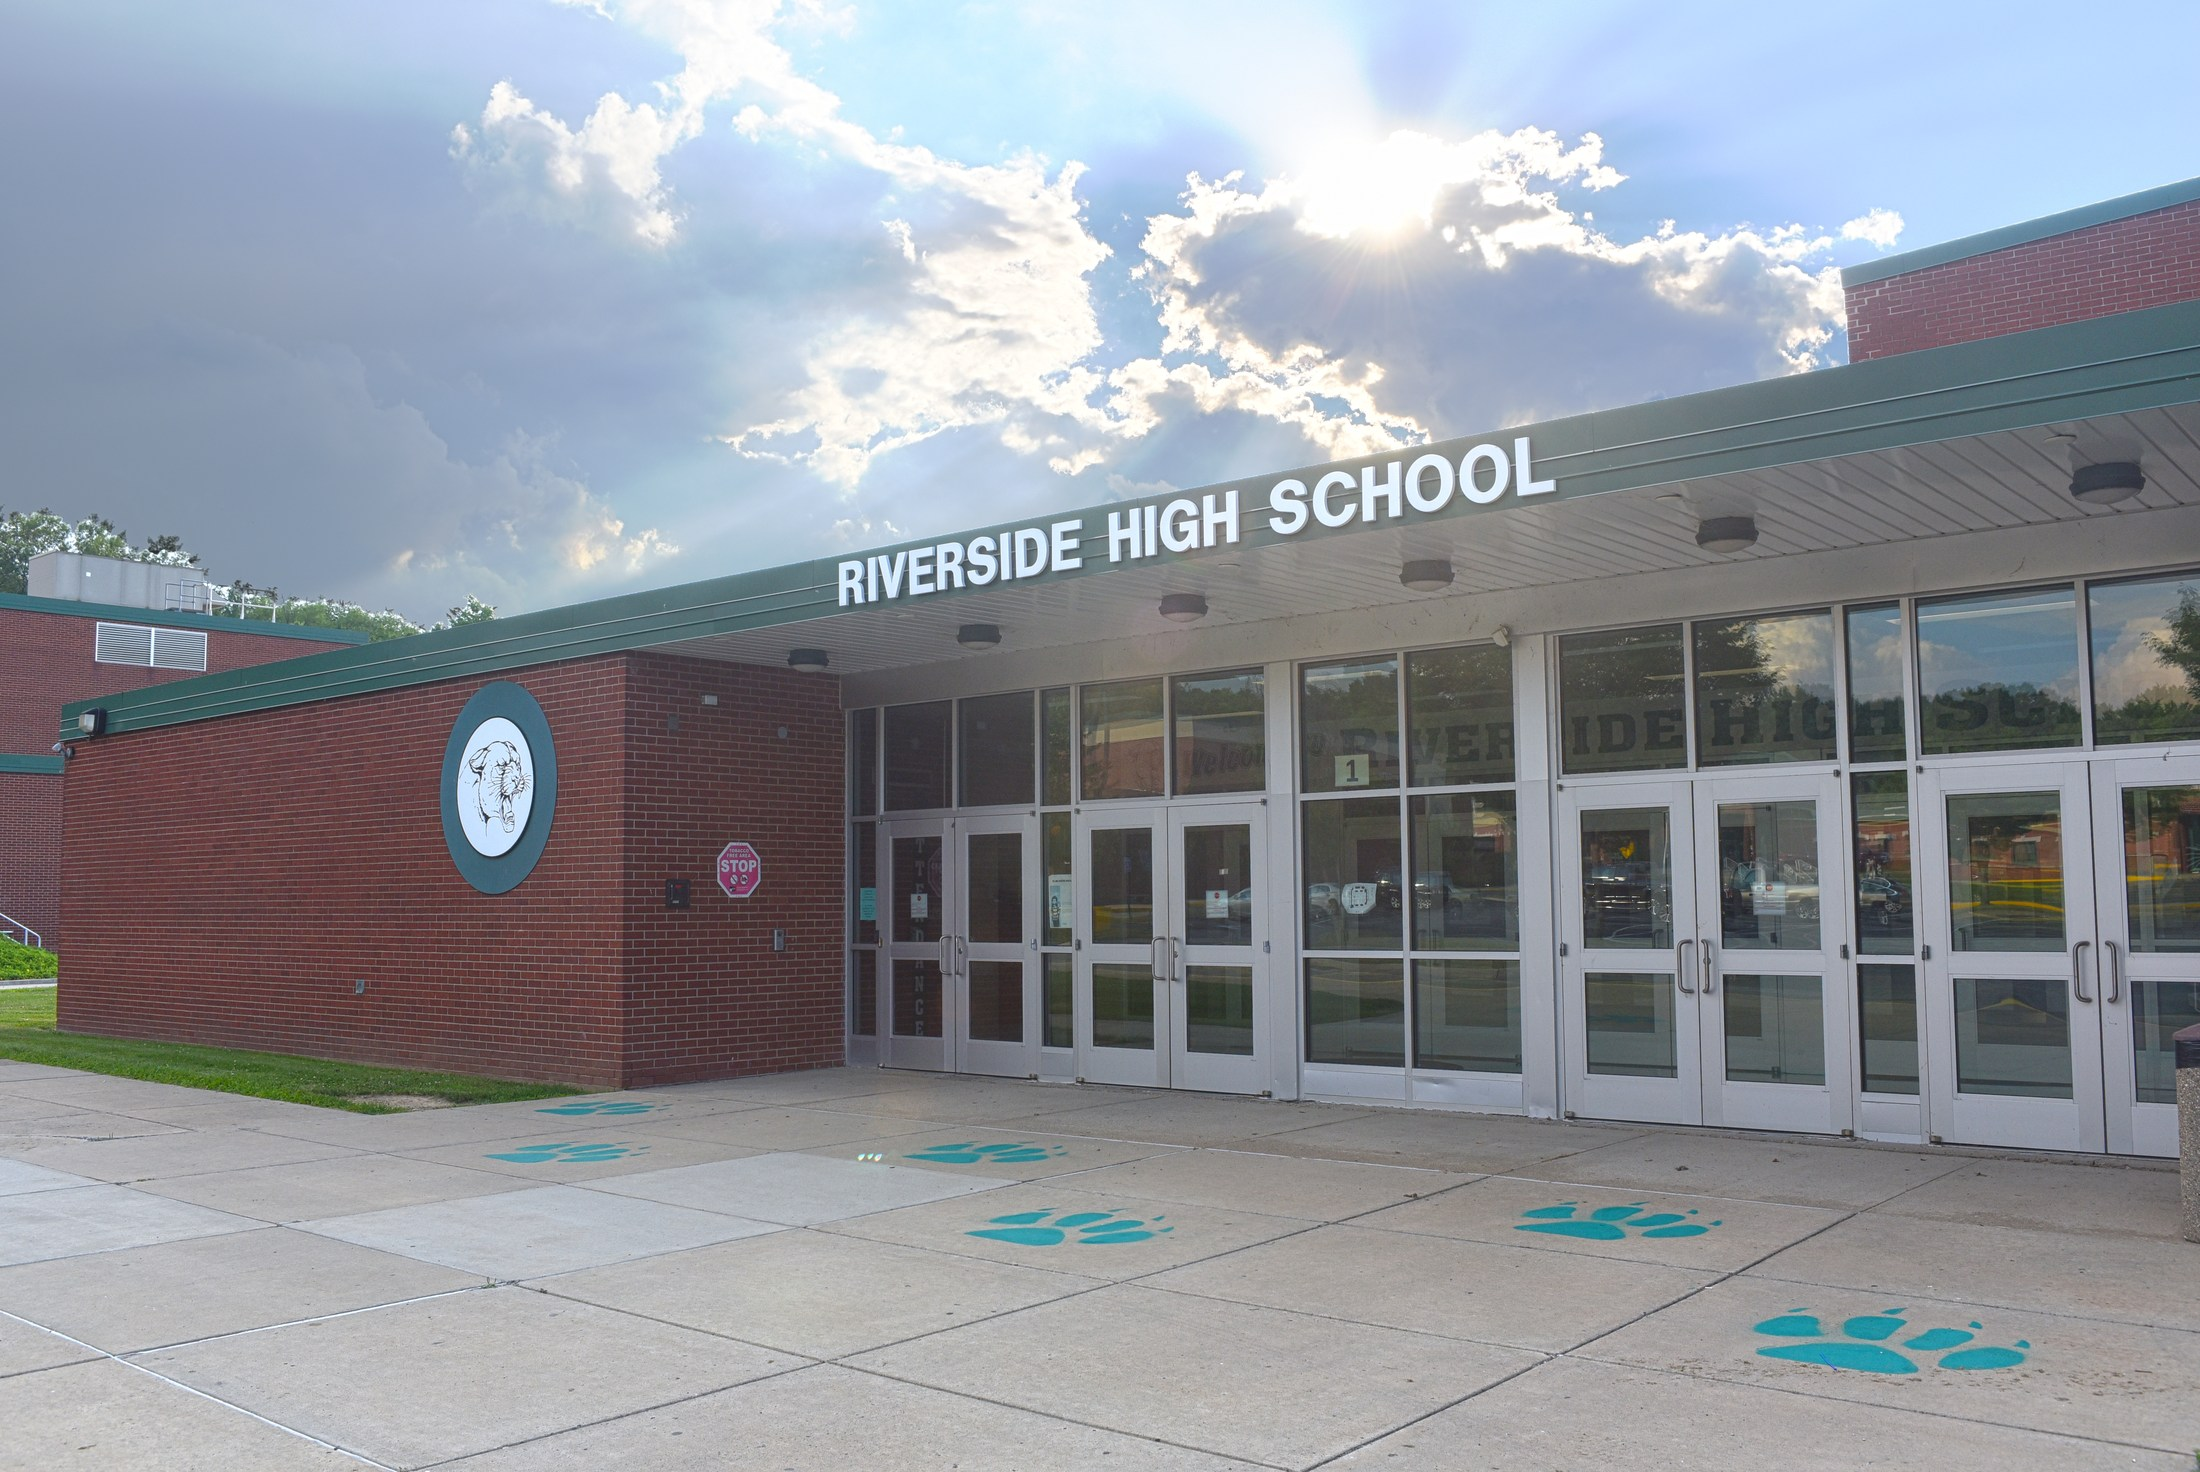 Home Riverside High School Riverside Beaver County School District